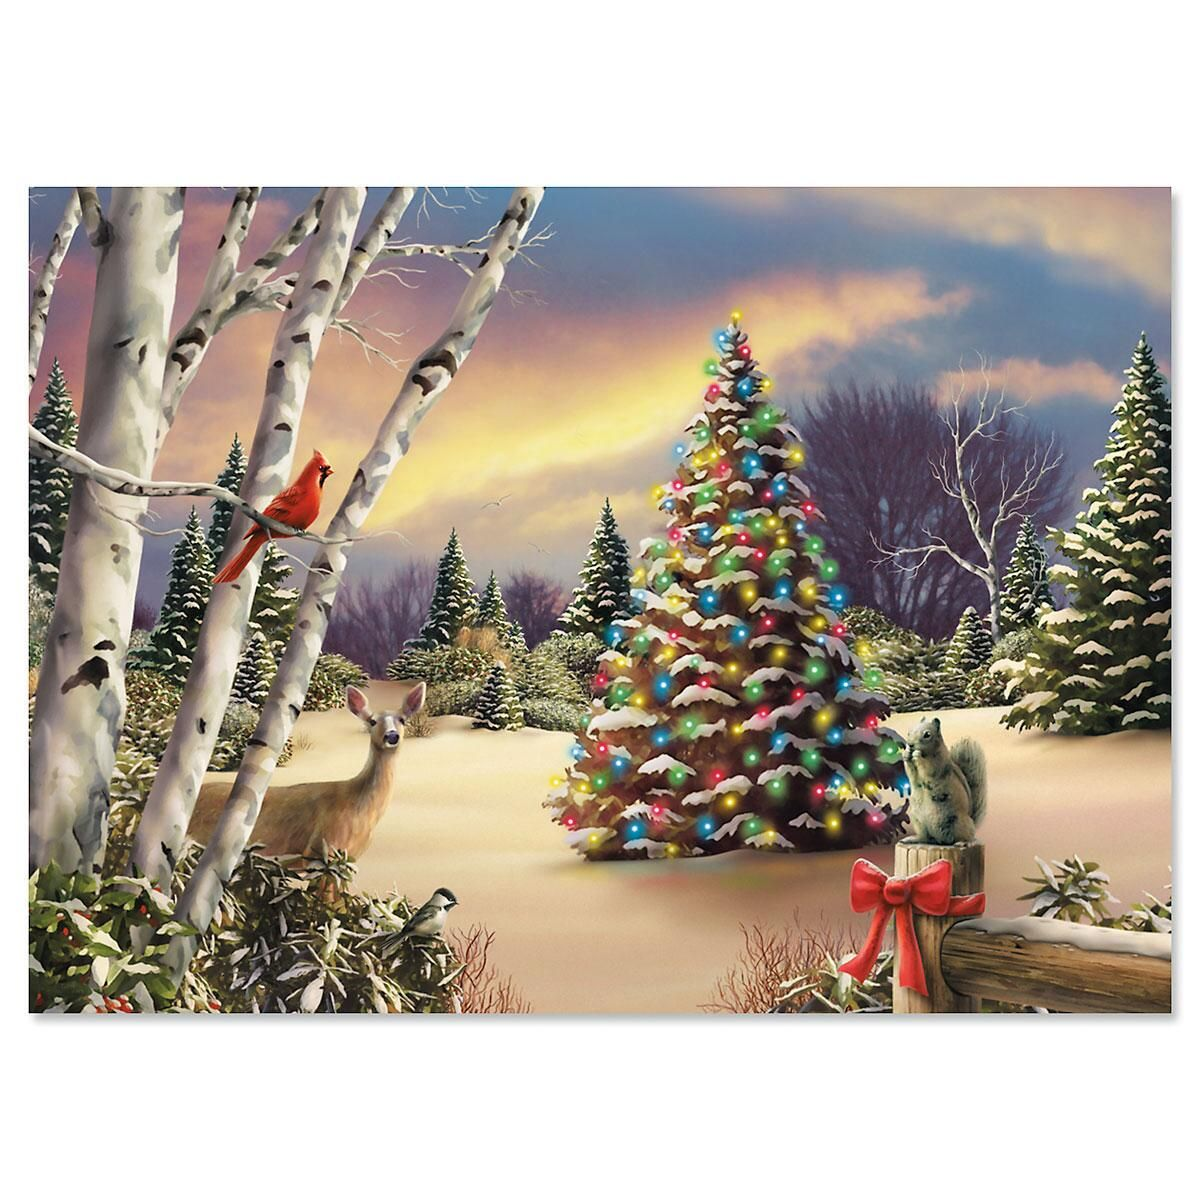 Innocent Light Personalized Christmas Cards - Set of 72